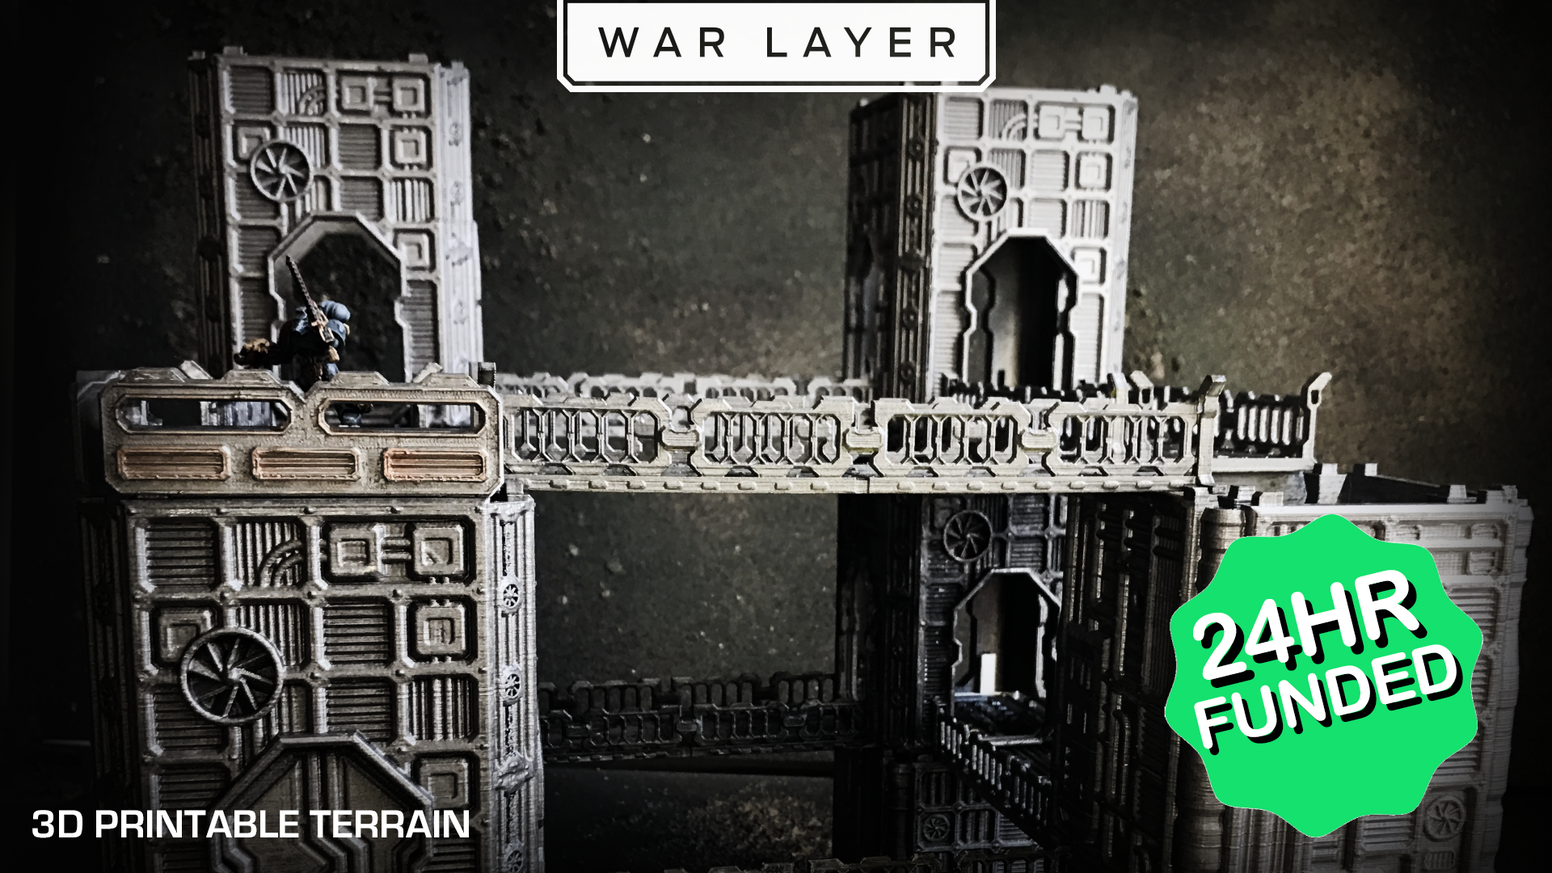 War Layer is a brand new collection of the best 3d printable sci-fi wargaming terrain.